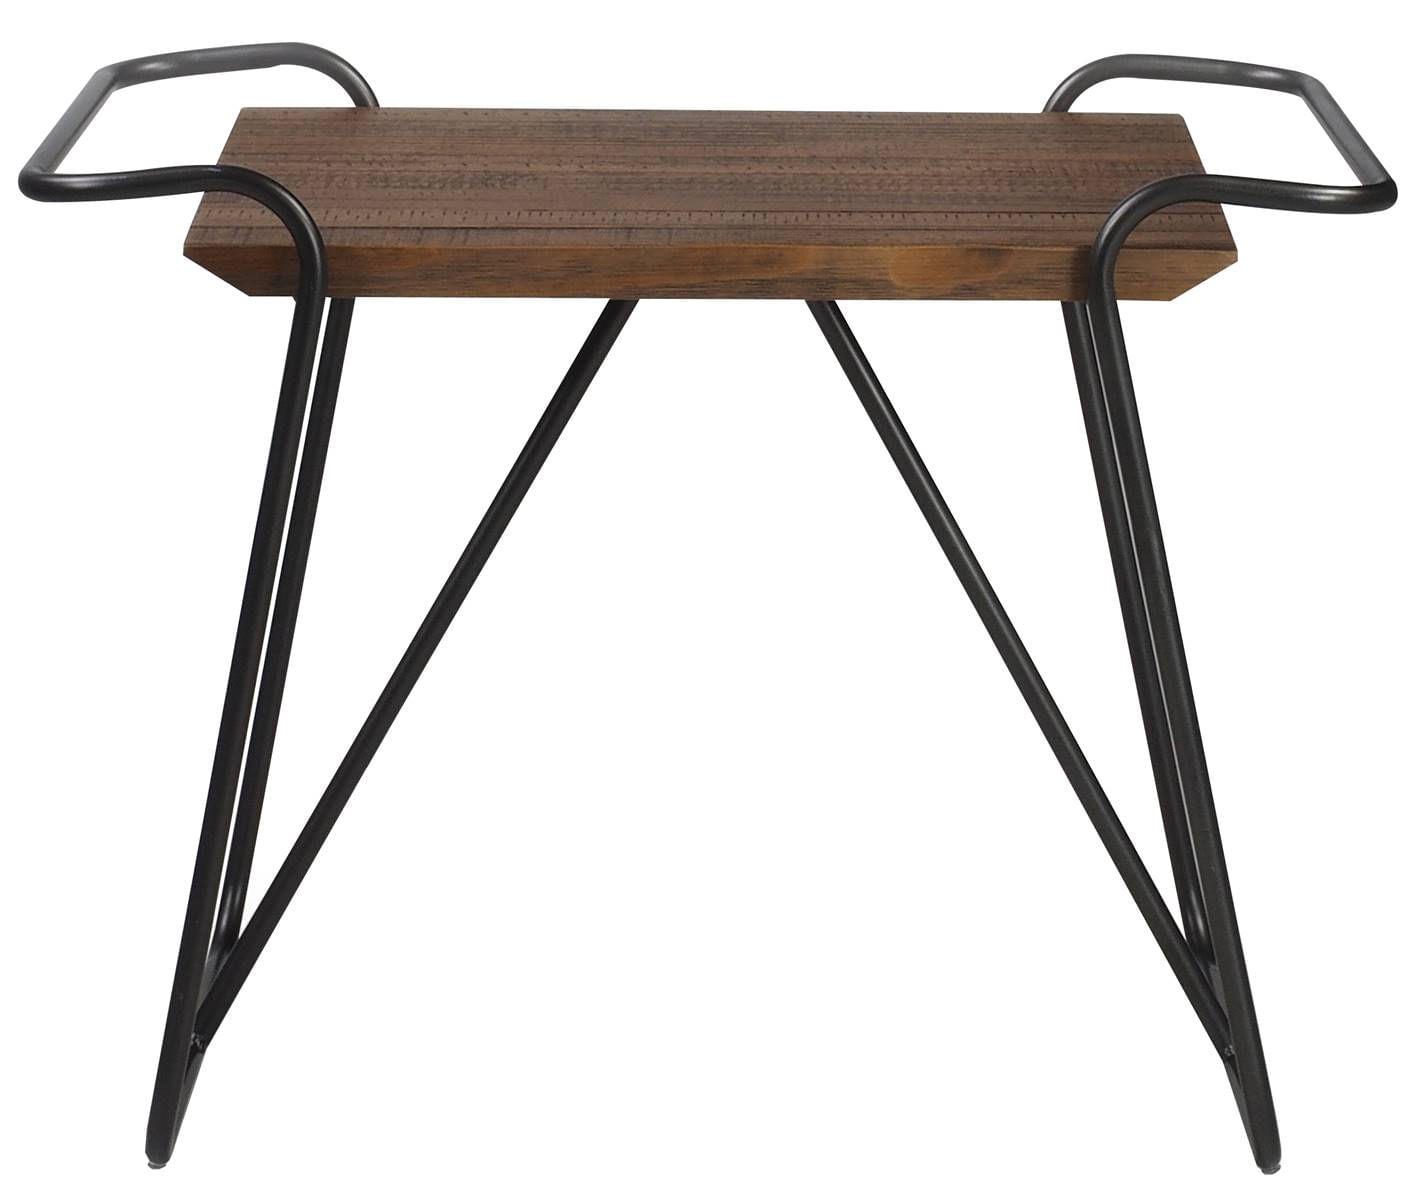 Banqueta Hicks cor Rustic Brown com Base Aco Grafite 56 cm (ALT) - 55664